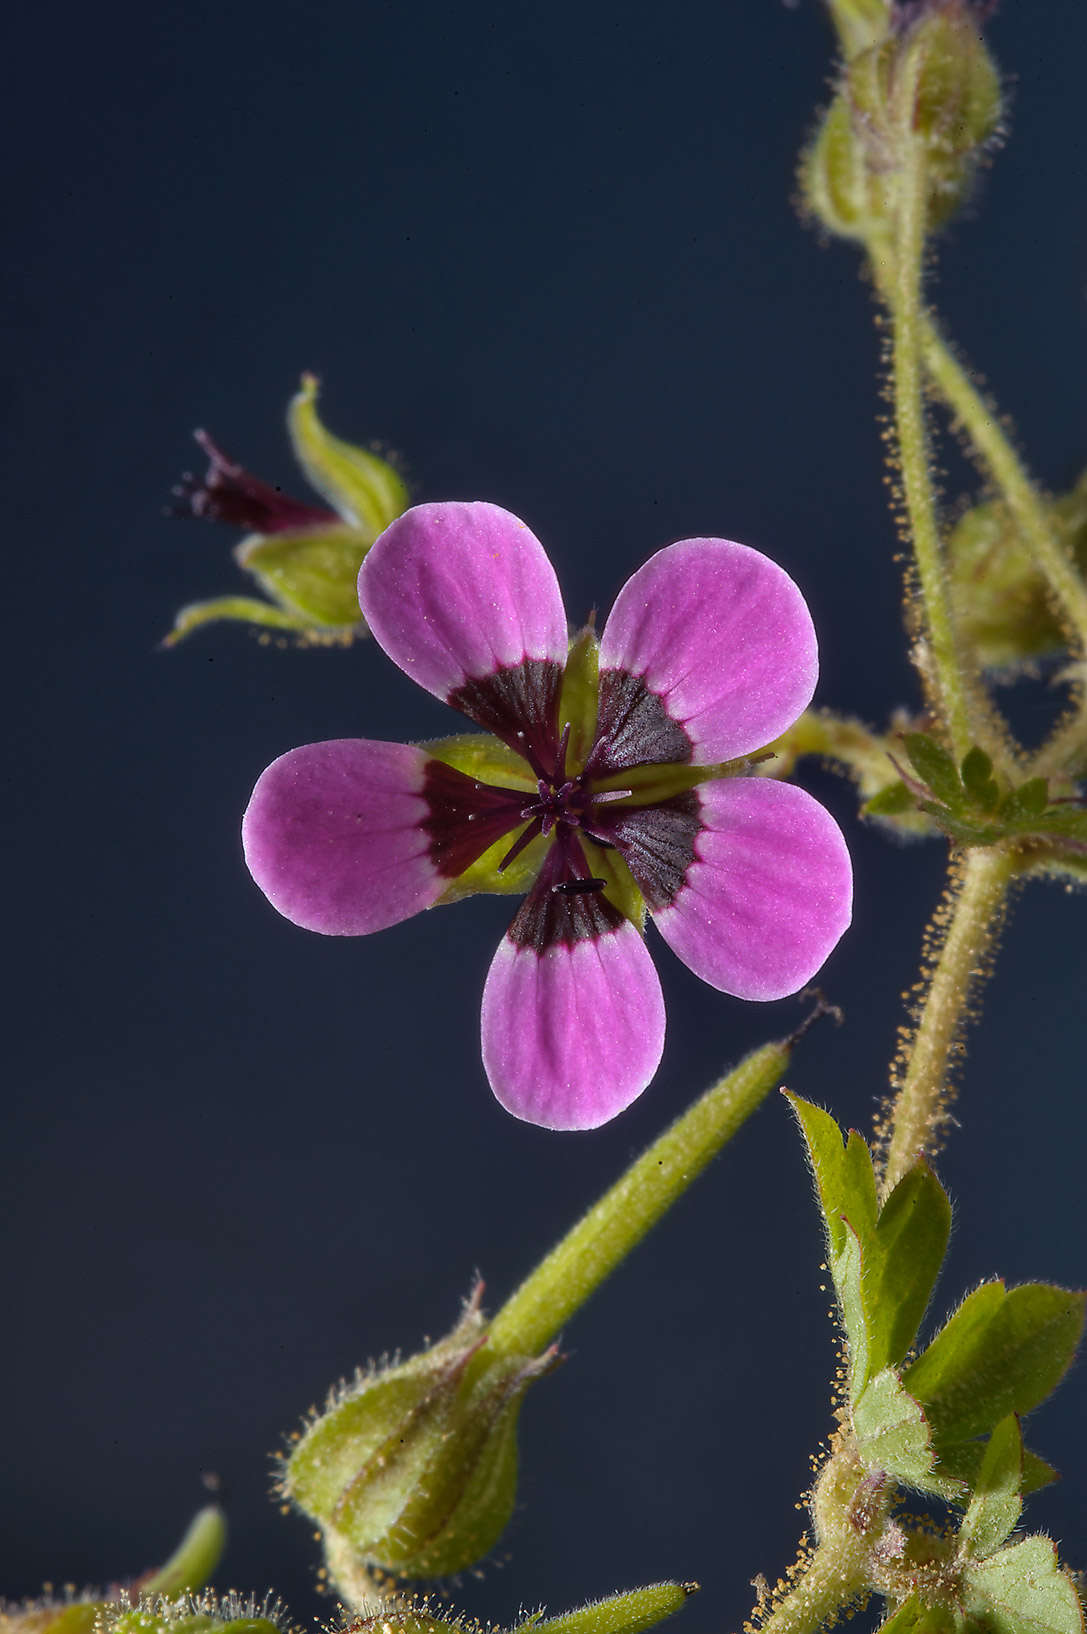 Flower and seeds of black-eyed geranium (Geranium...farms area, in north-western Qatar